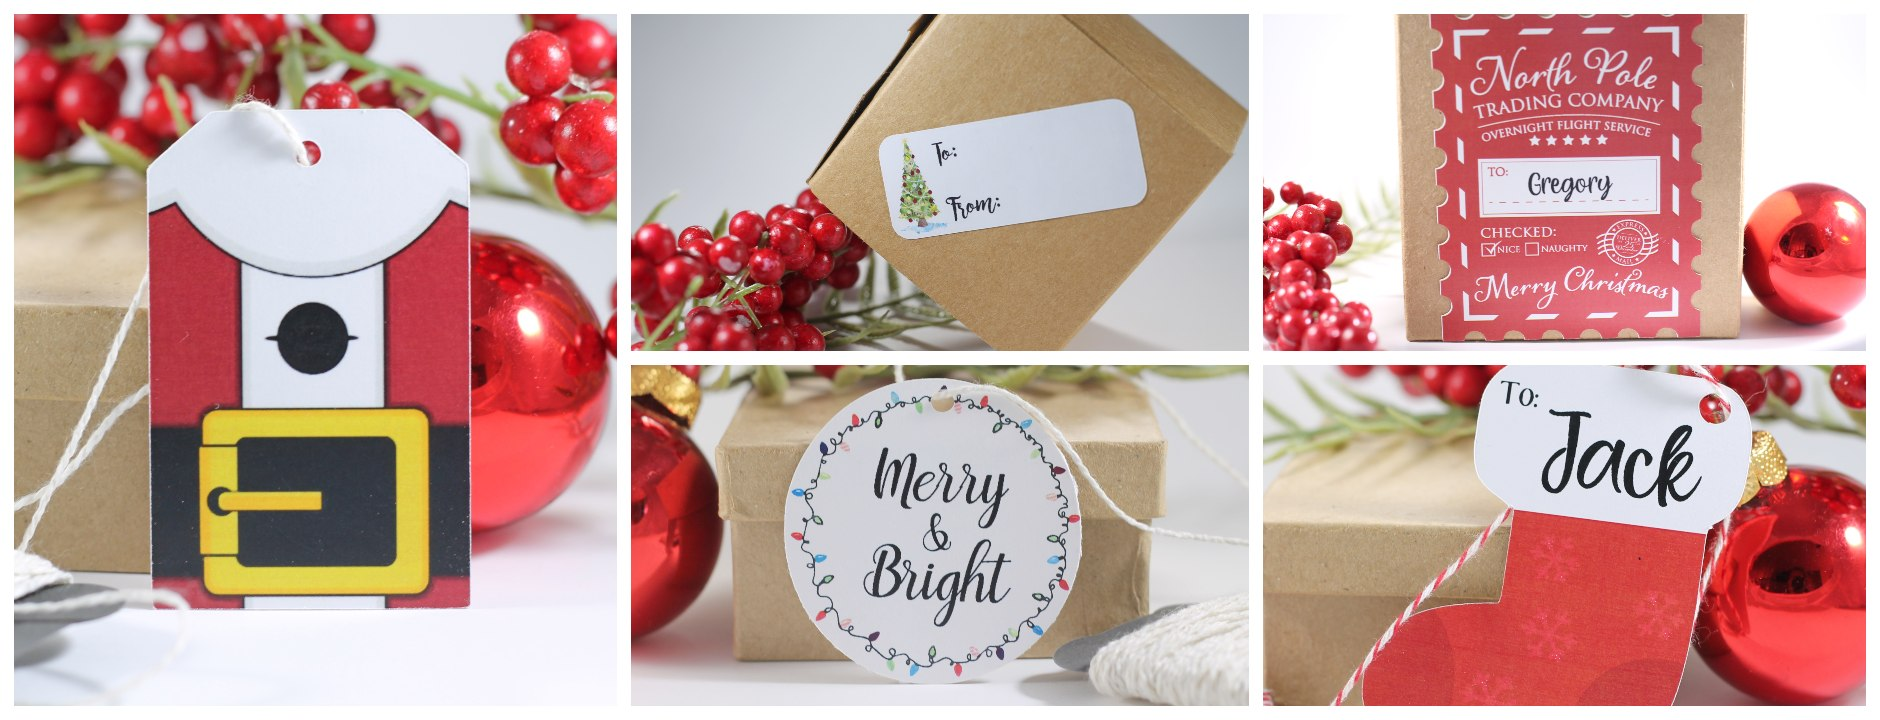 Christmas and holiday gift tags for presents